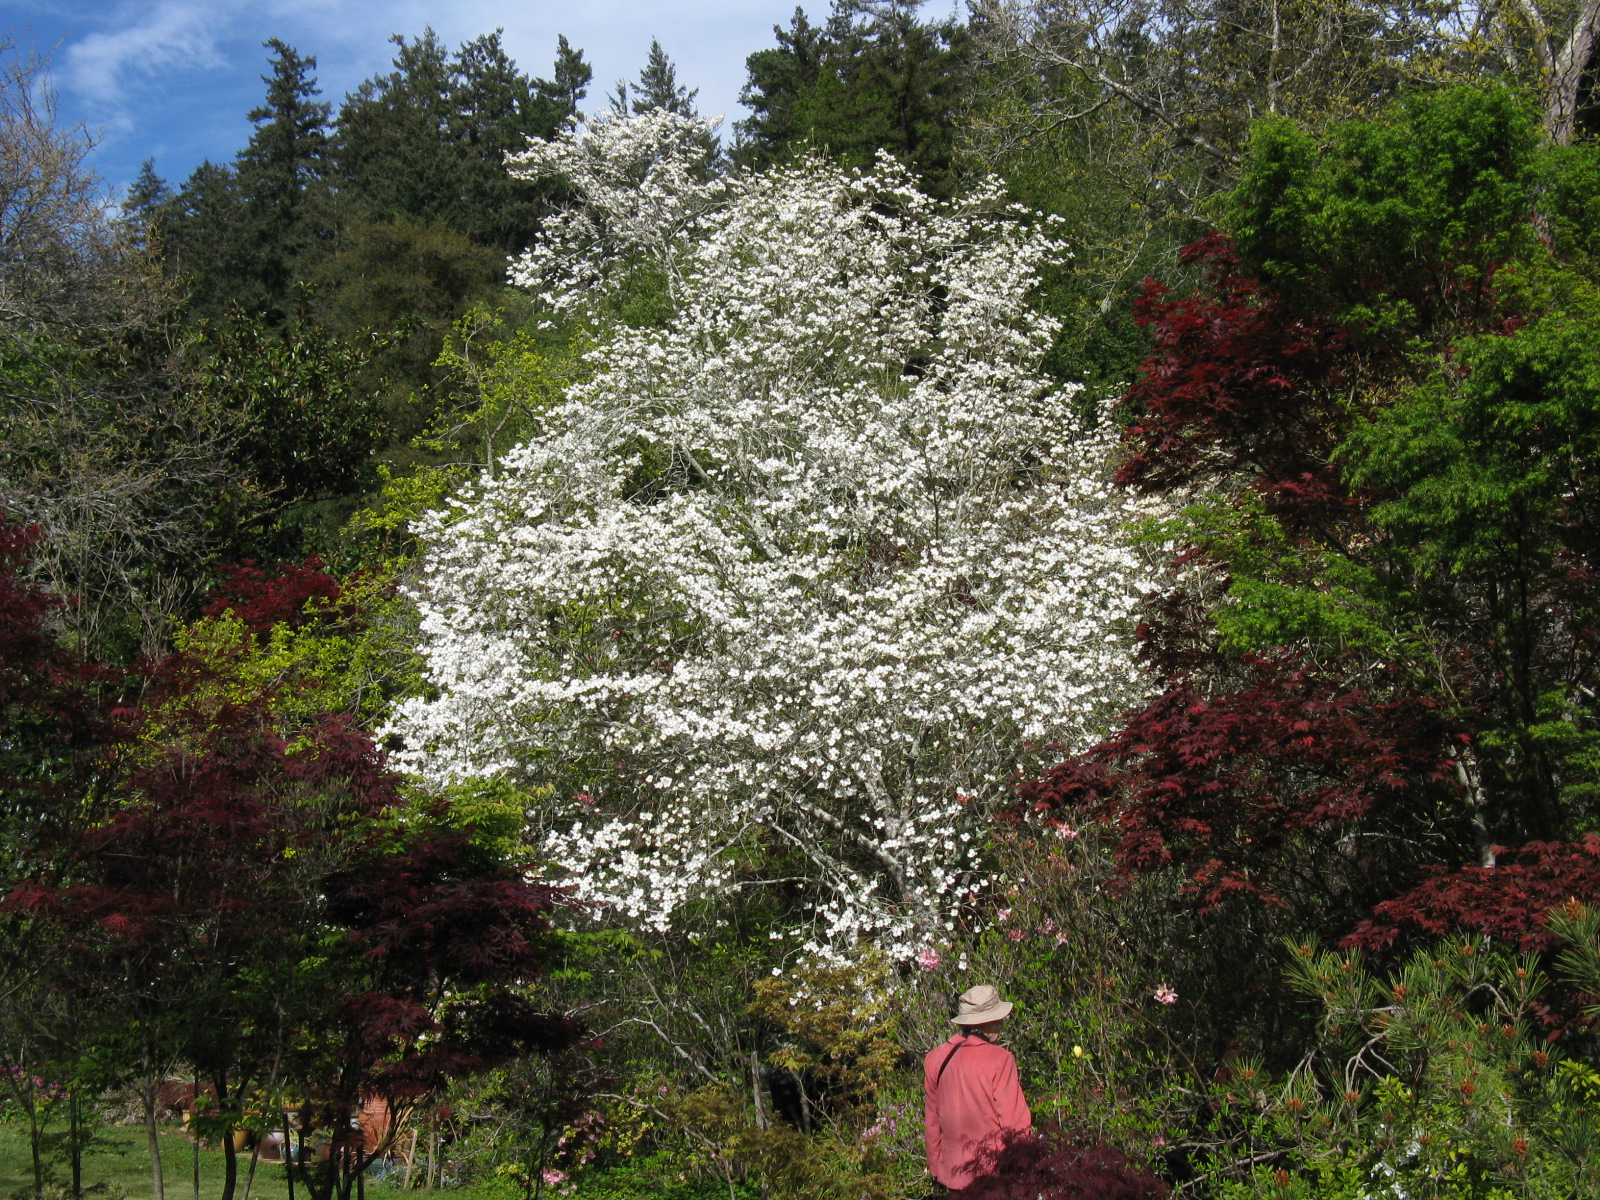 Trees of Santa Cruz County: Cornus florida - Flowering Dogwood